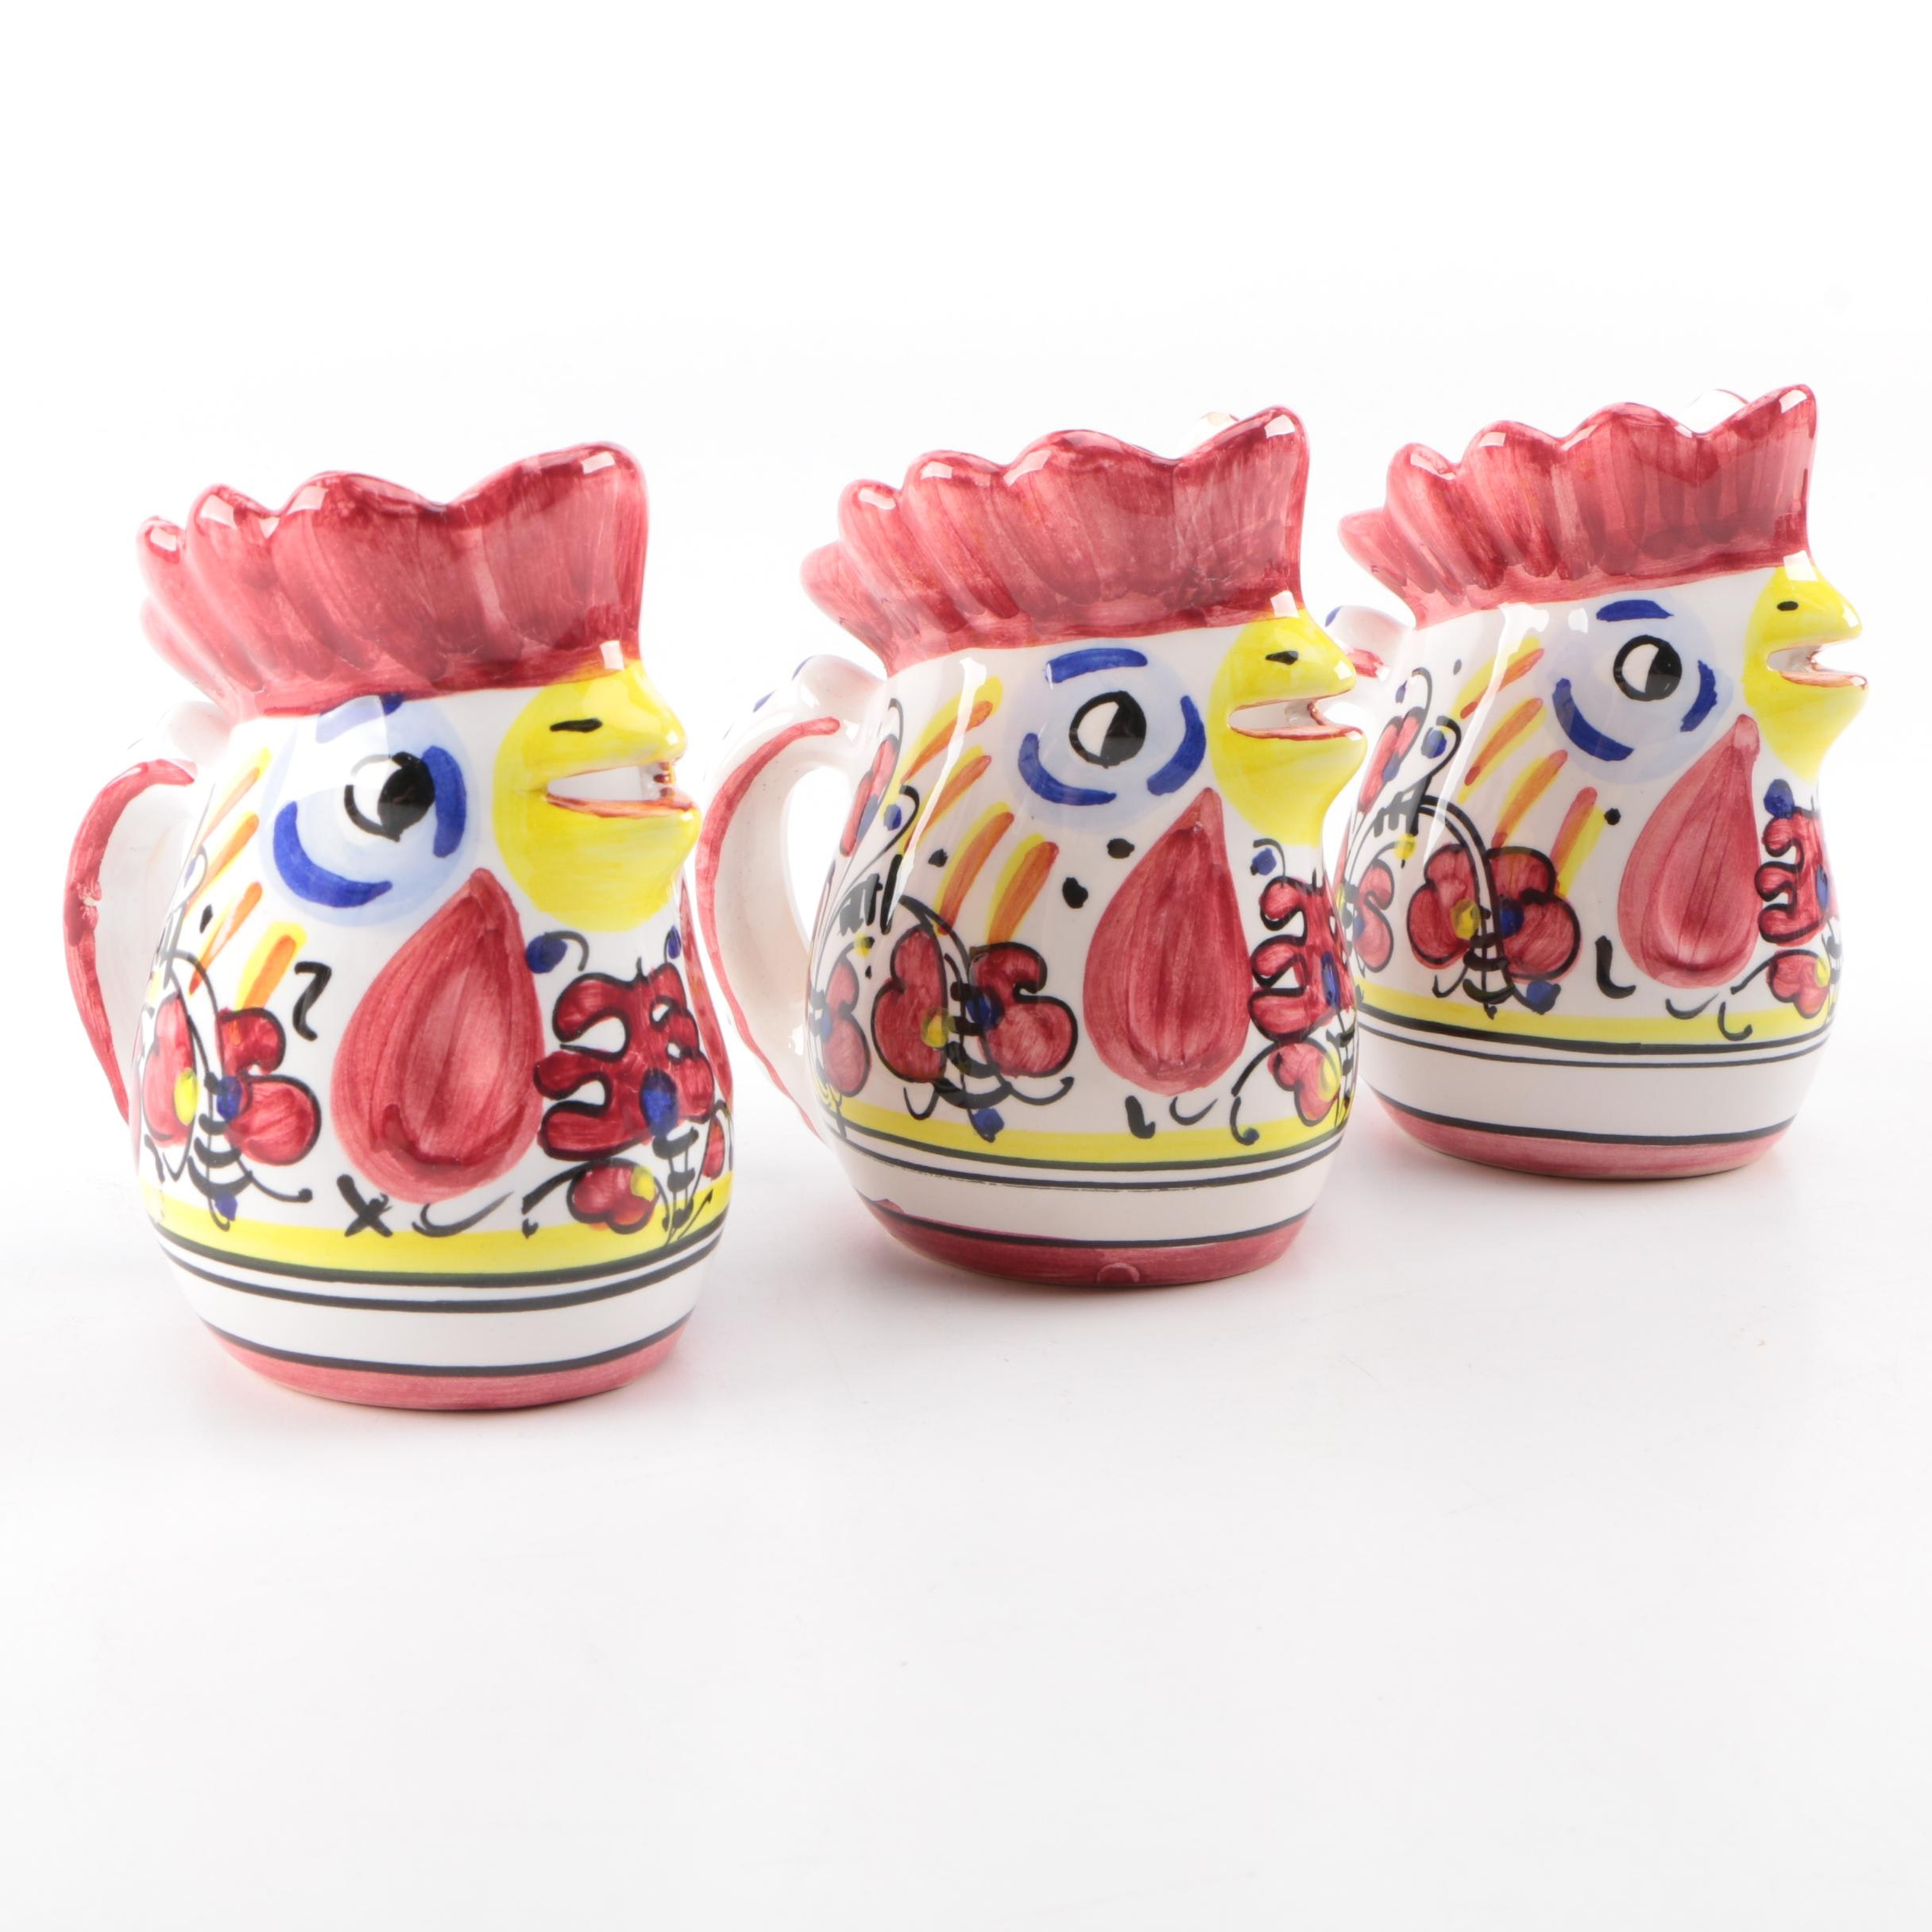 Italian Ceramic Rooster Themed Creamers